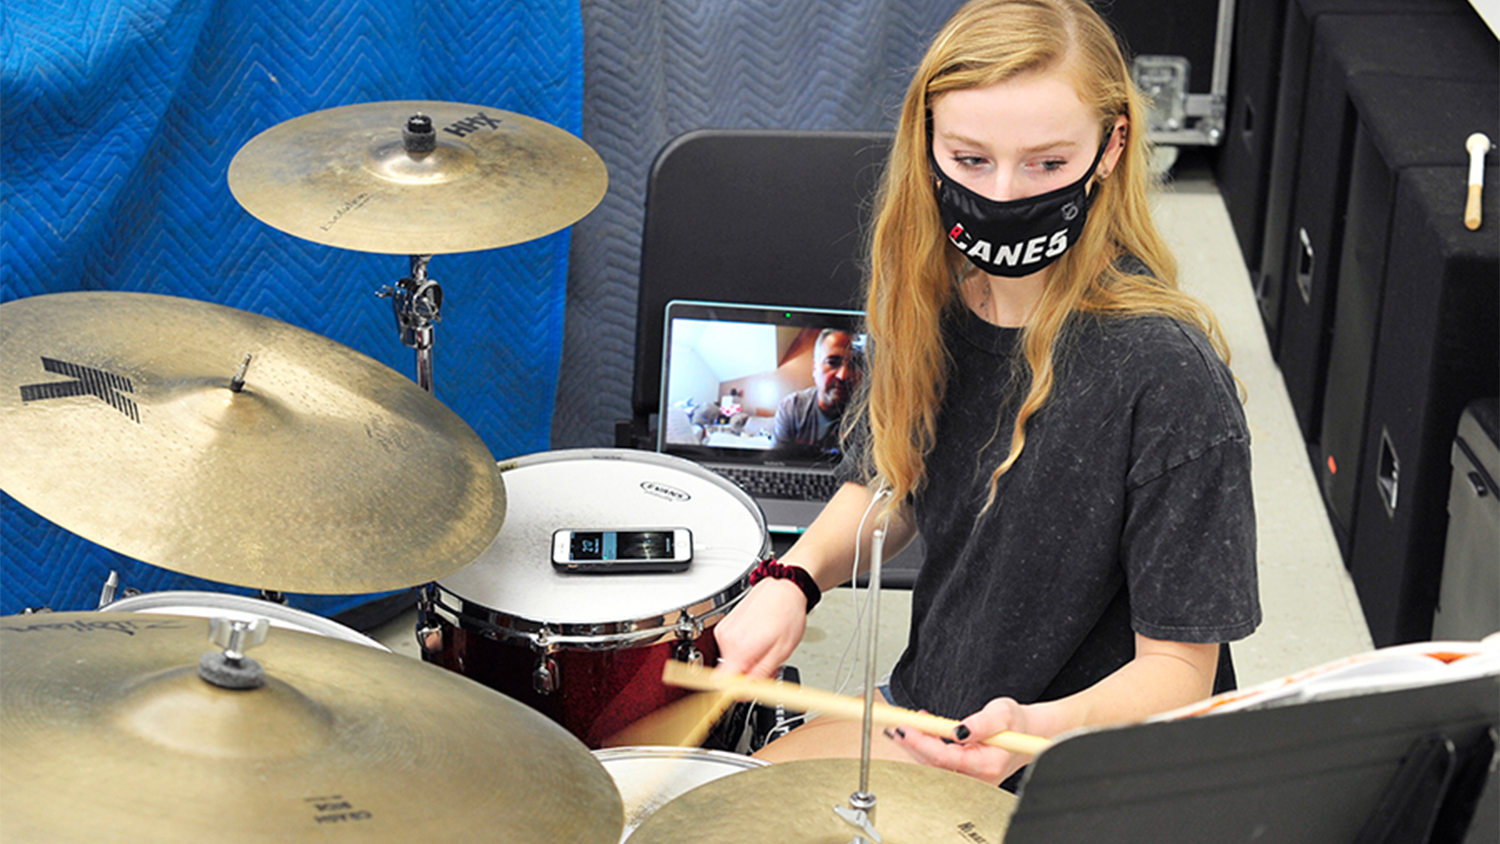 Student AnnE Ford takes online drum classes.